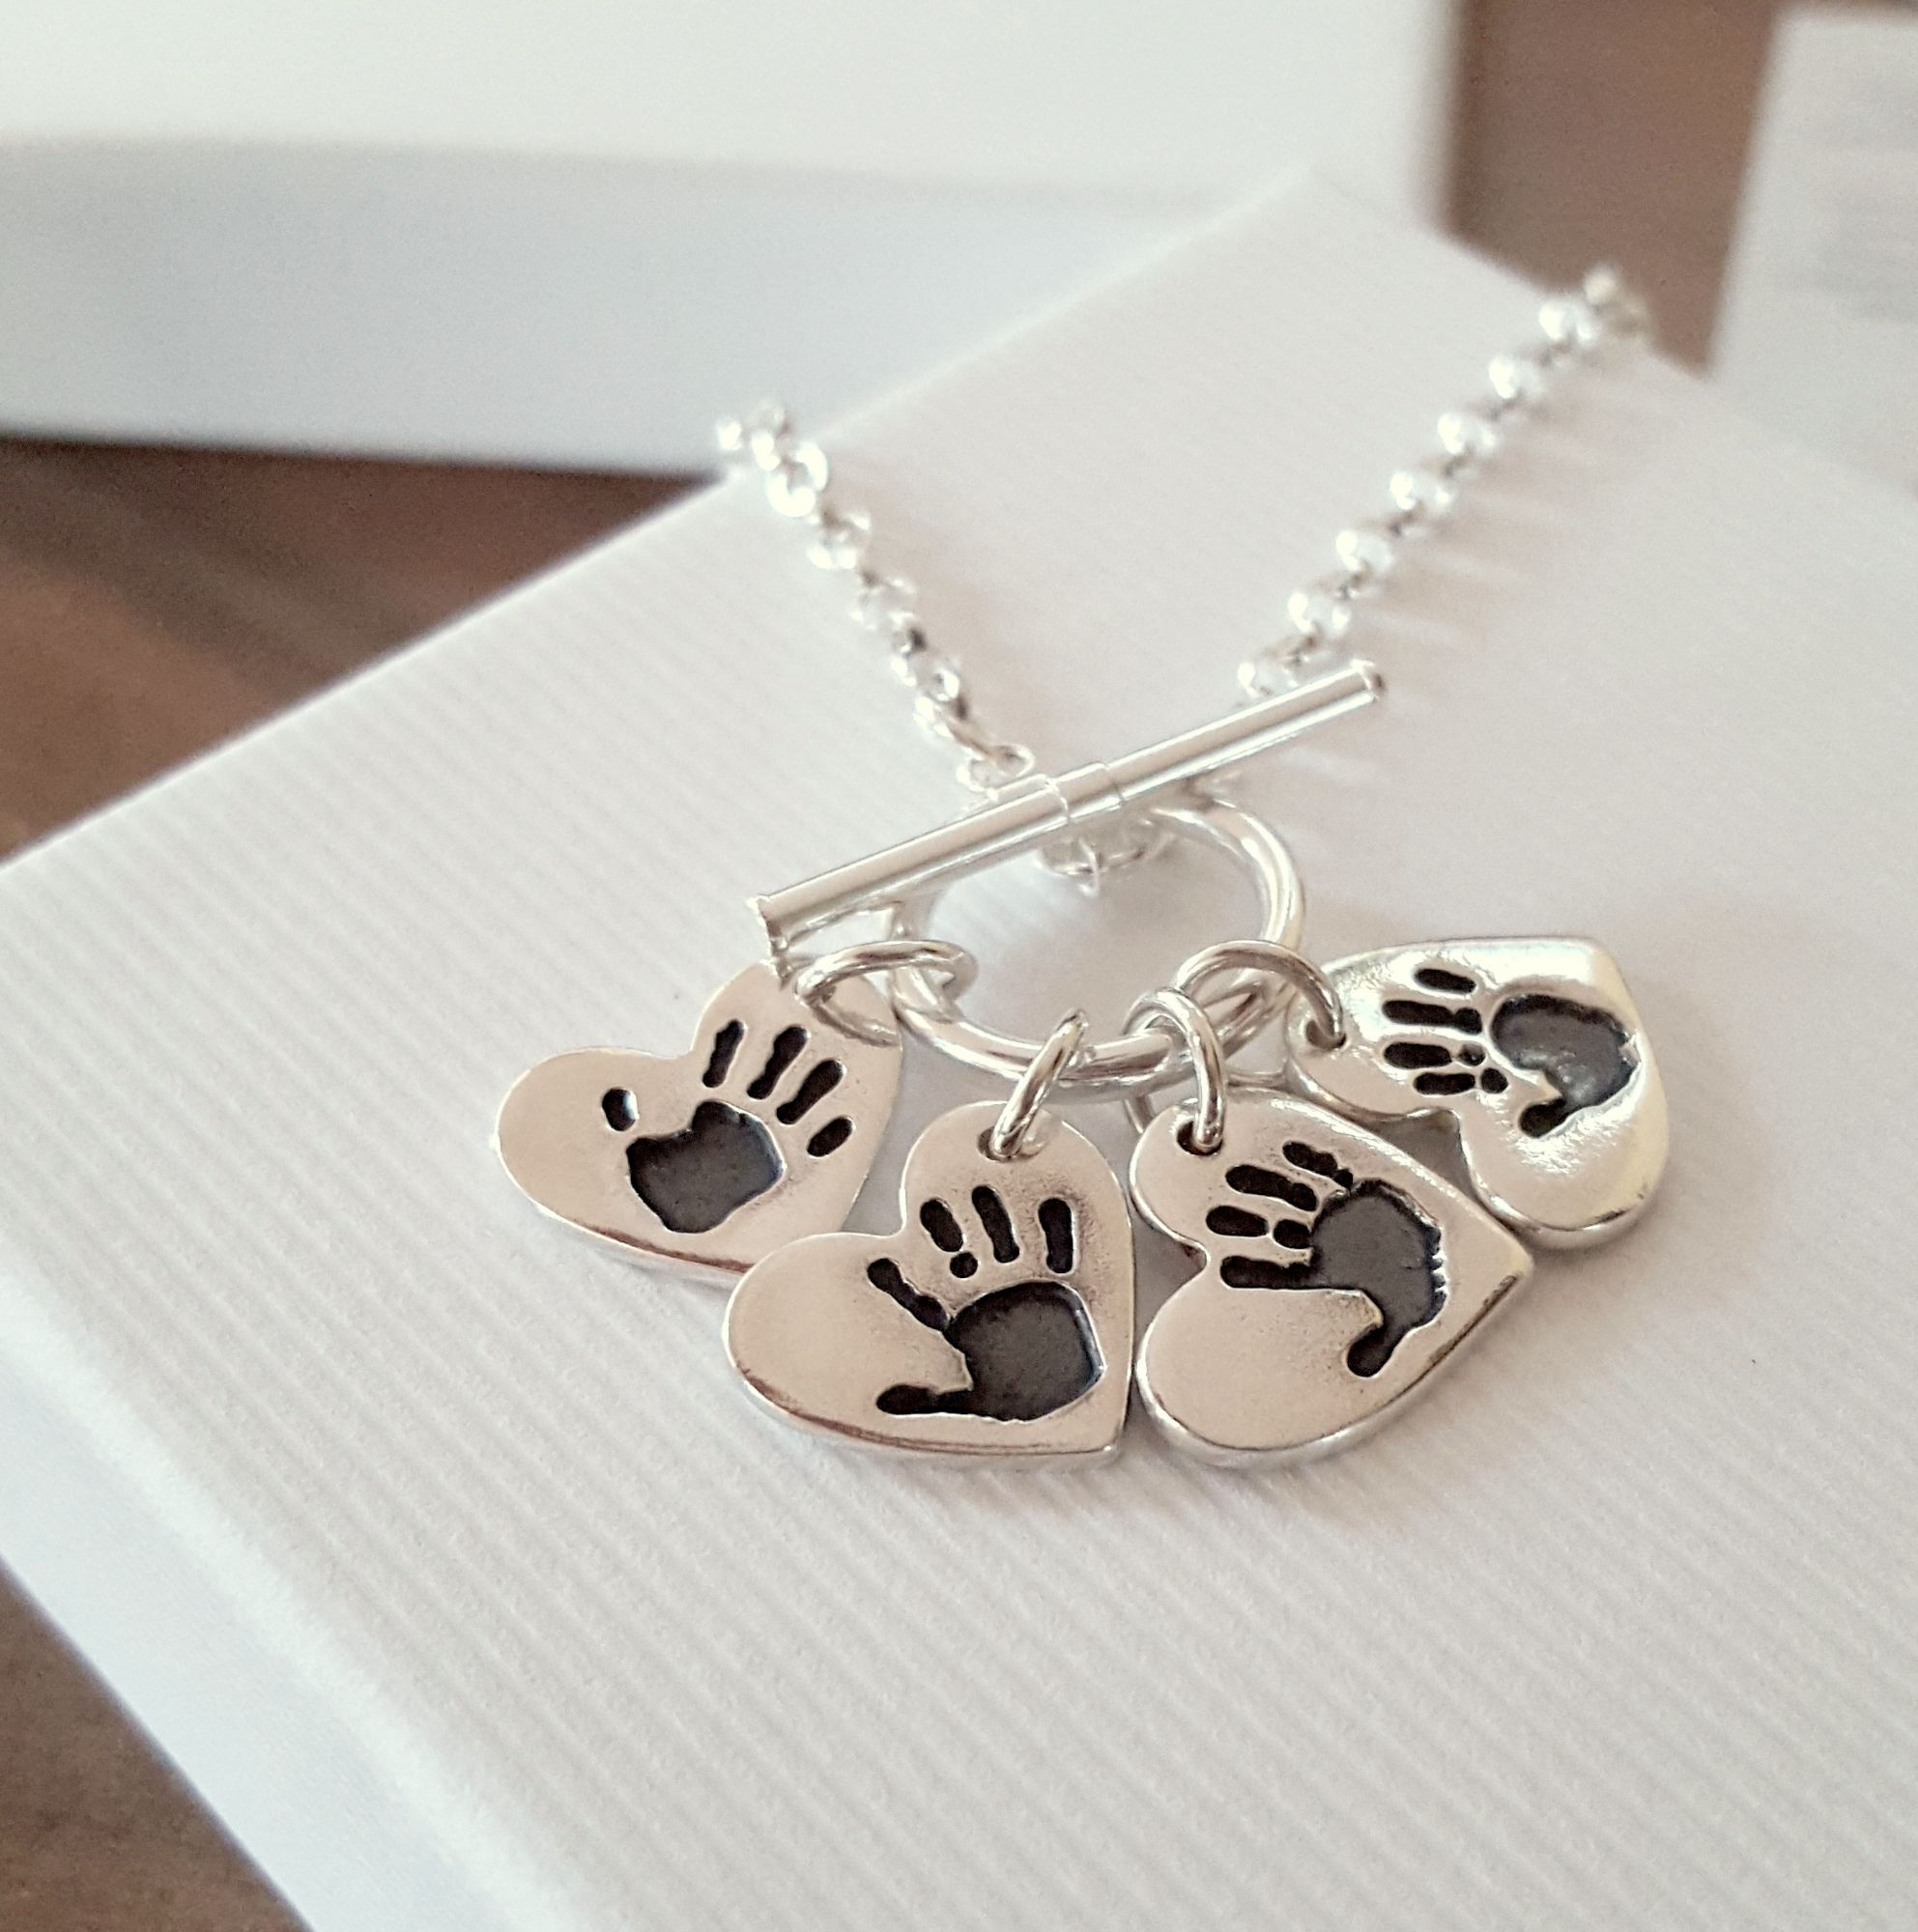 My Family Charm Necklace